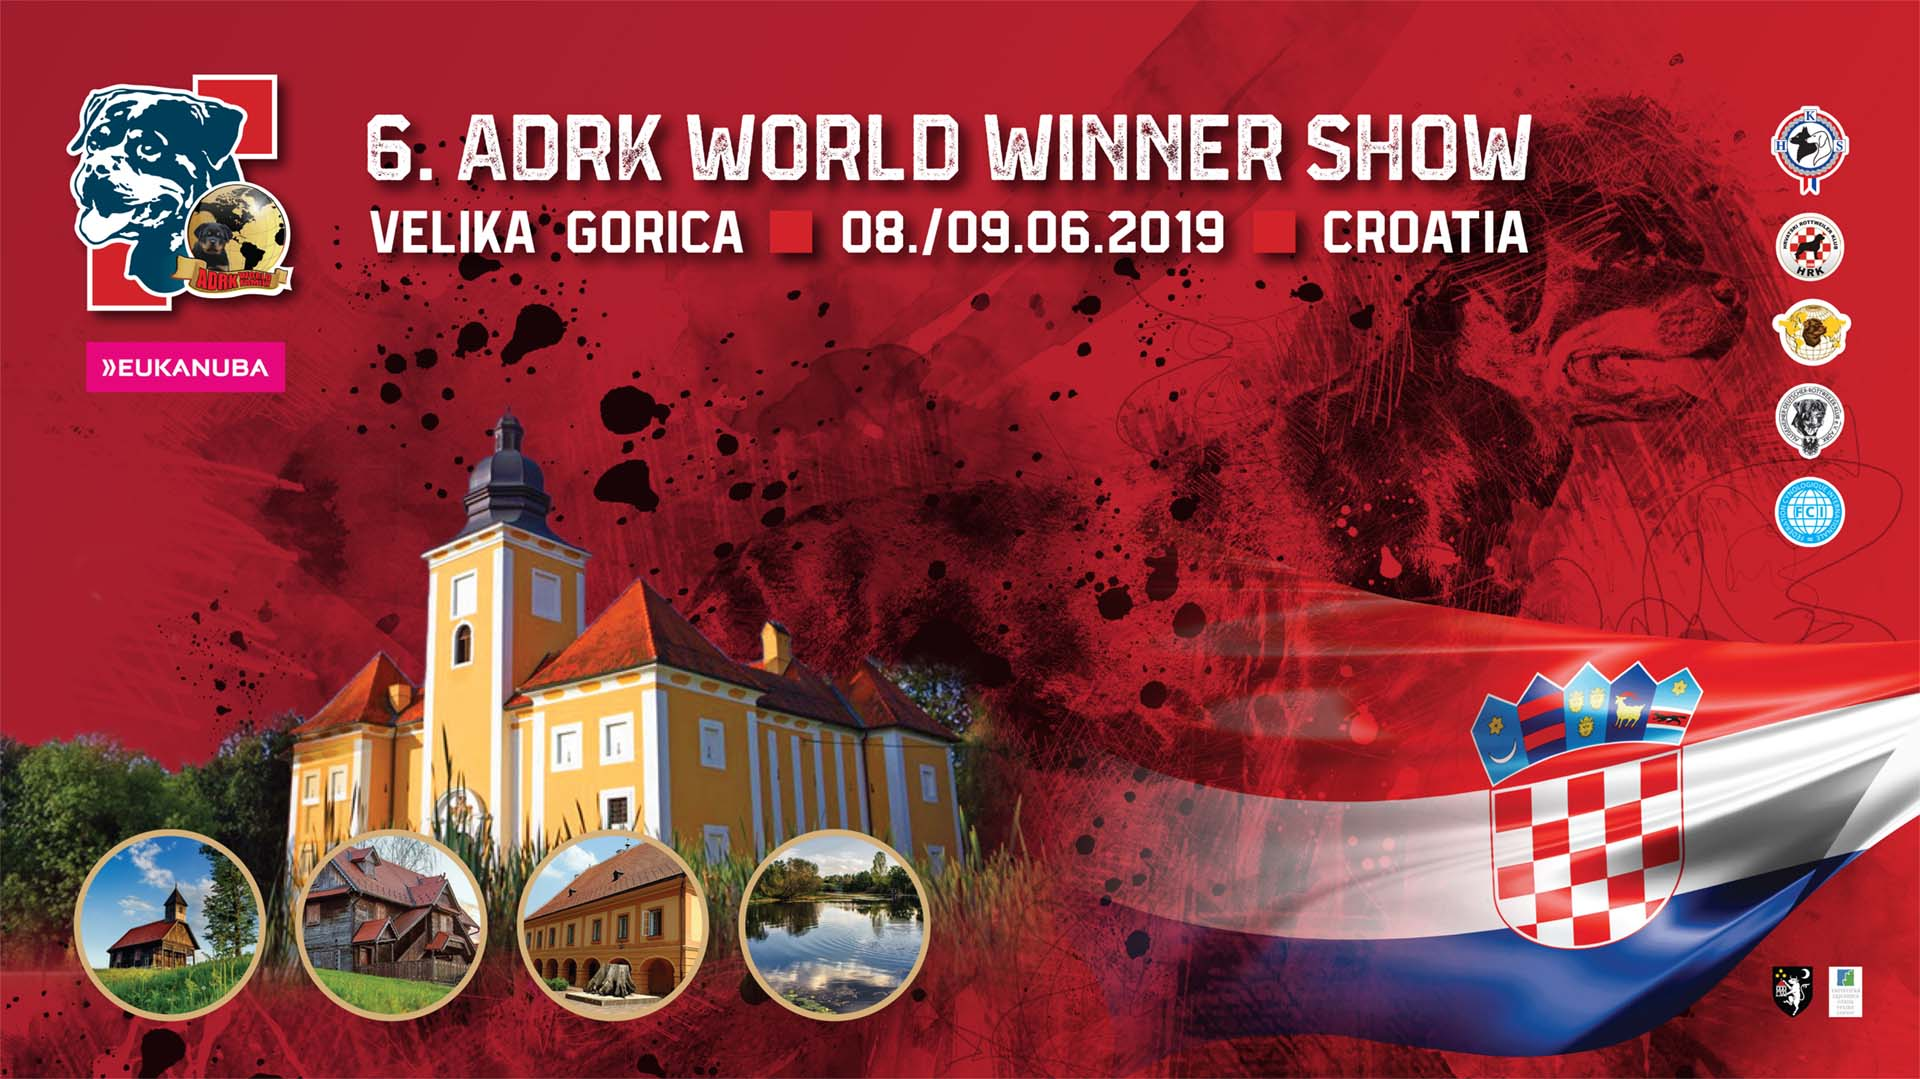 ADRK-WORLD-WINNER-SHOW-2019-header-Banner HOME - Dell'Antico Guerriero